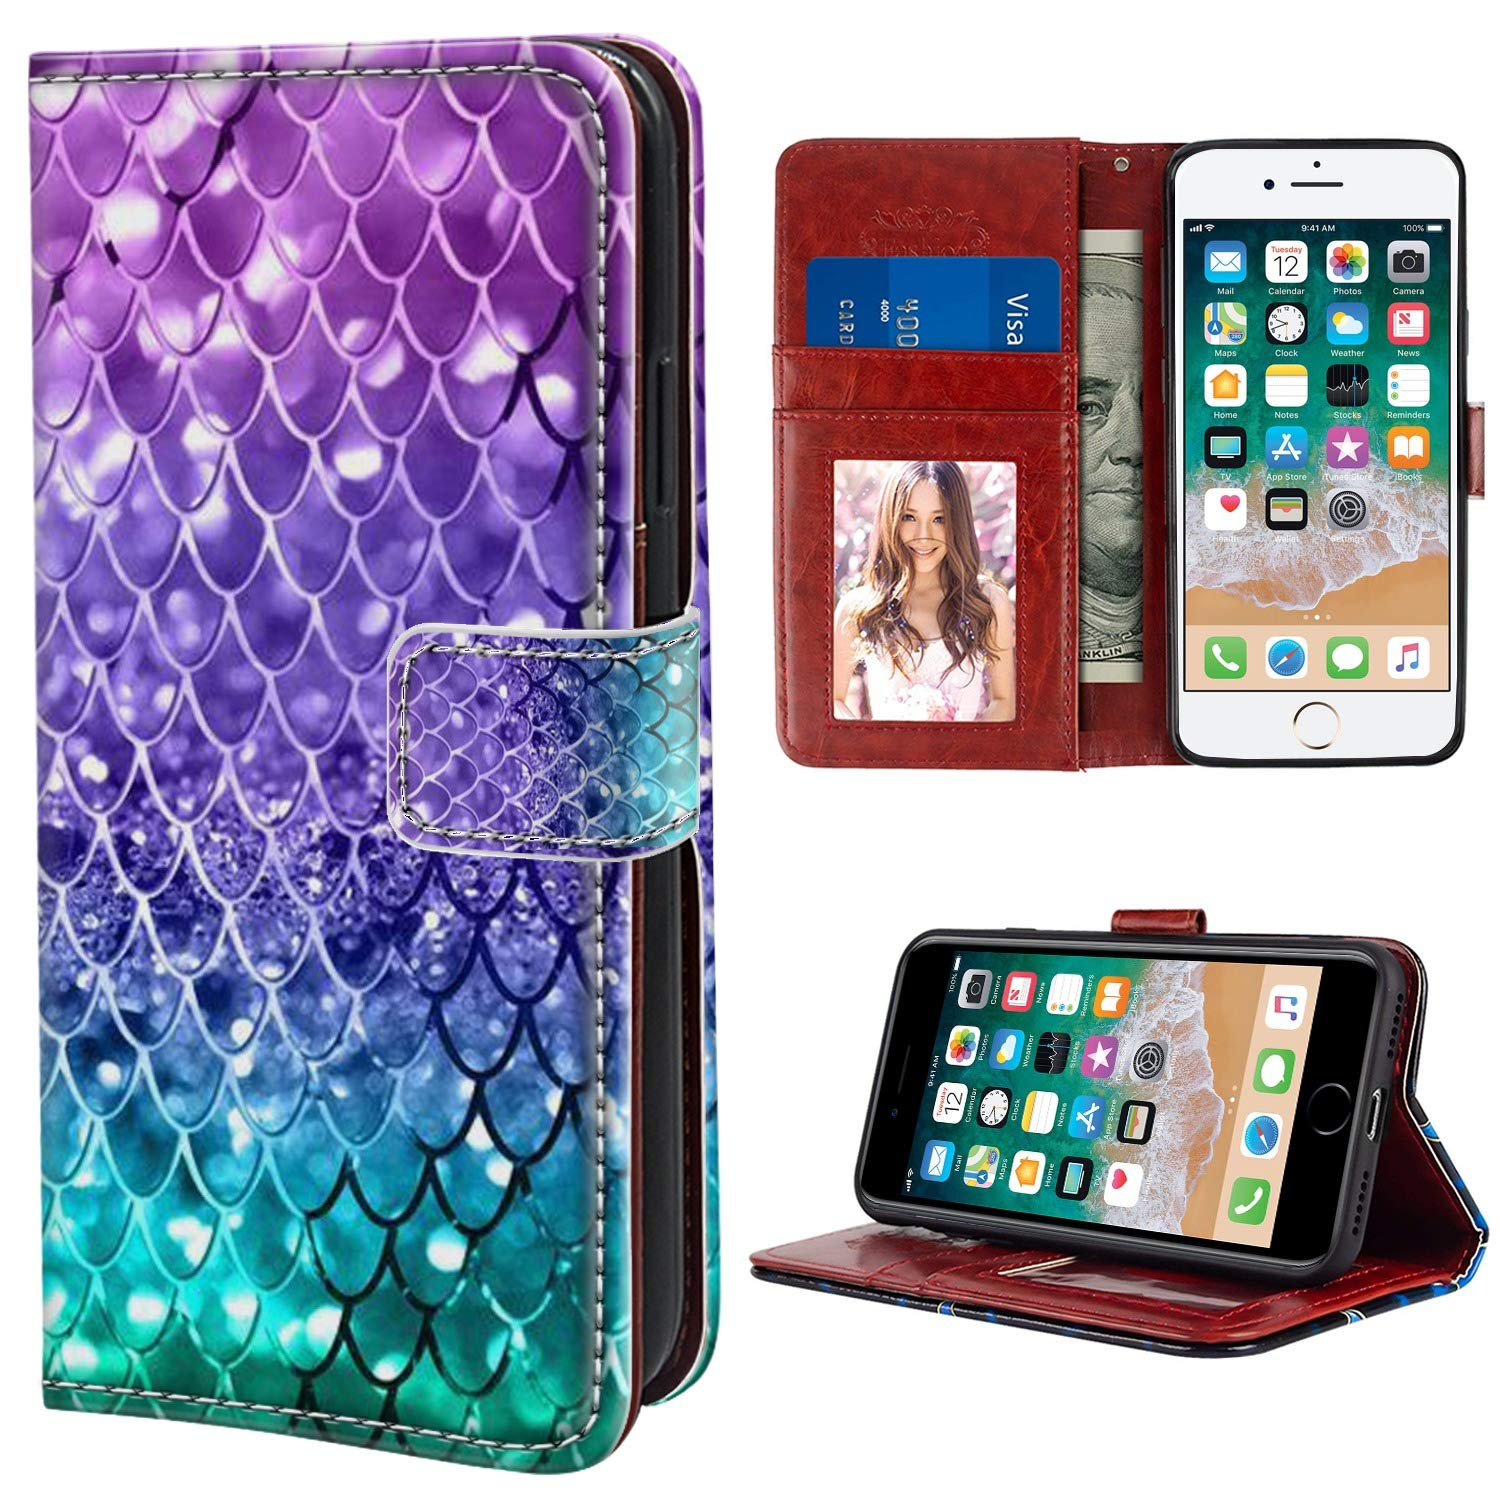 online store b0186 f8f46 YaoLang iPhone 7/8 Plus Wallet Case, Mermaid Scales PU Leather Standable  Wallet Phone Case with Card Holder Magnetic Hold for iPhone 7/8 Plus